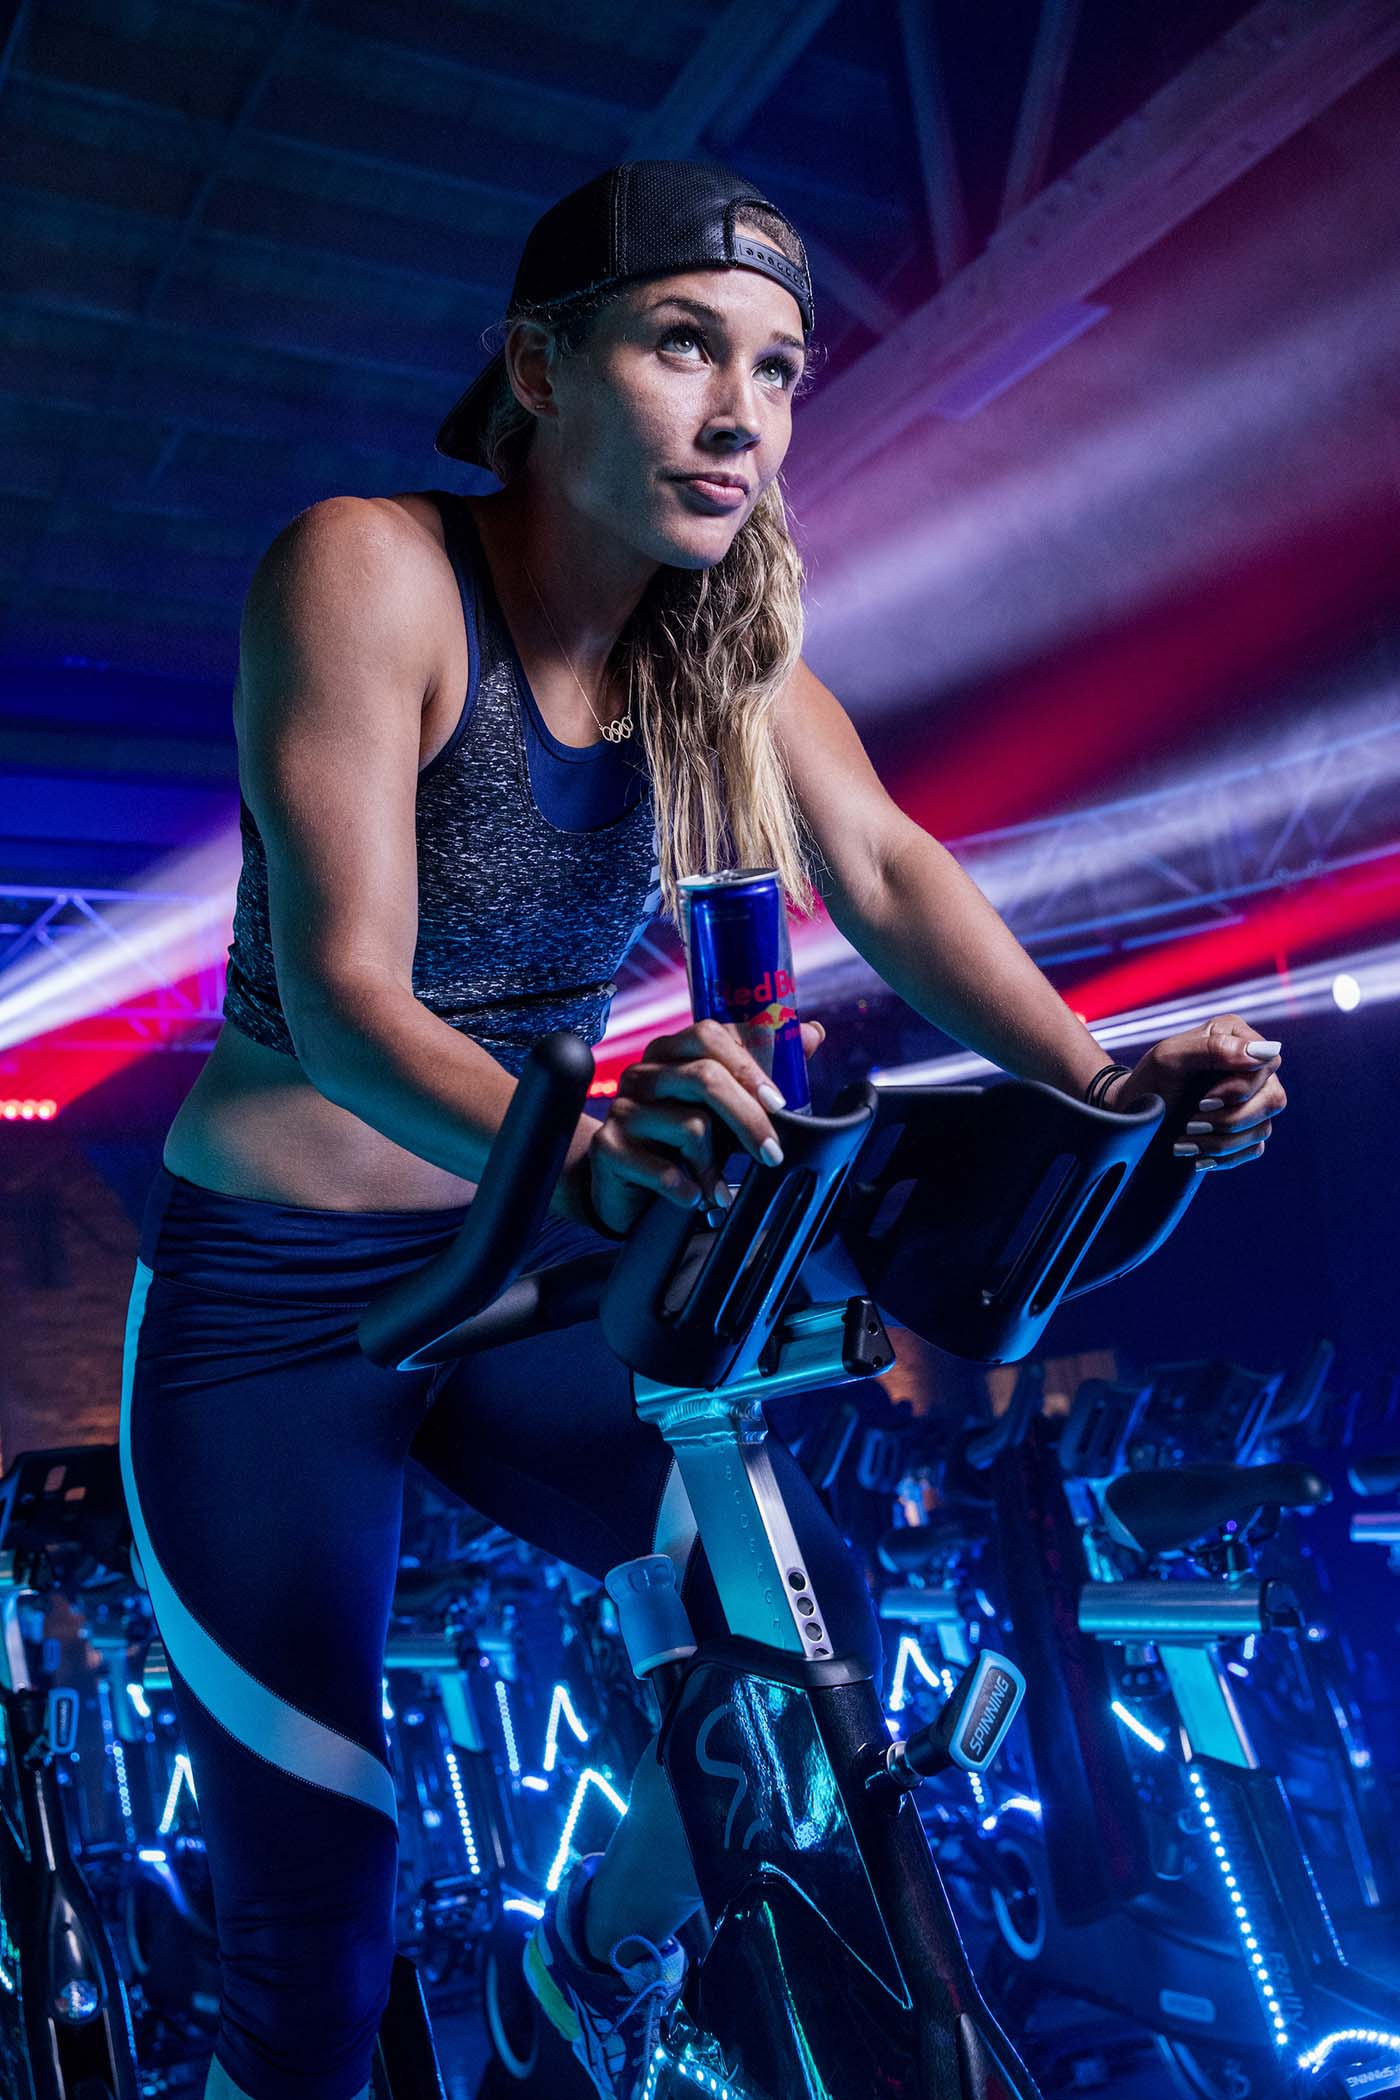 Lolo Jones participates in Red Bull Ready Spin in Chicago on May 24th, 2017.